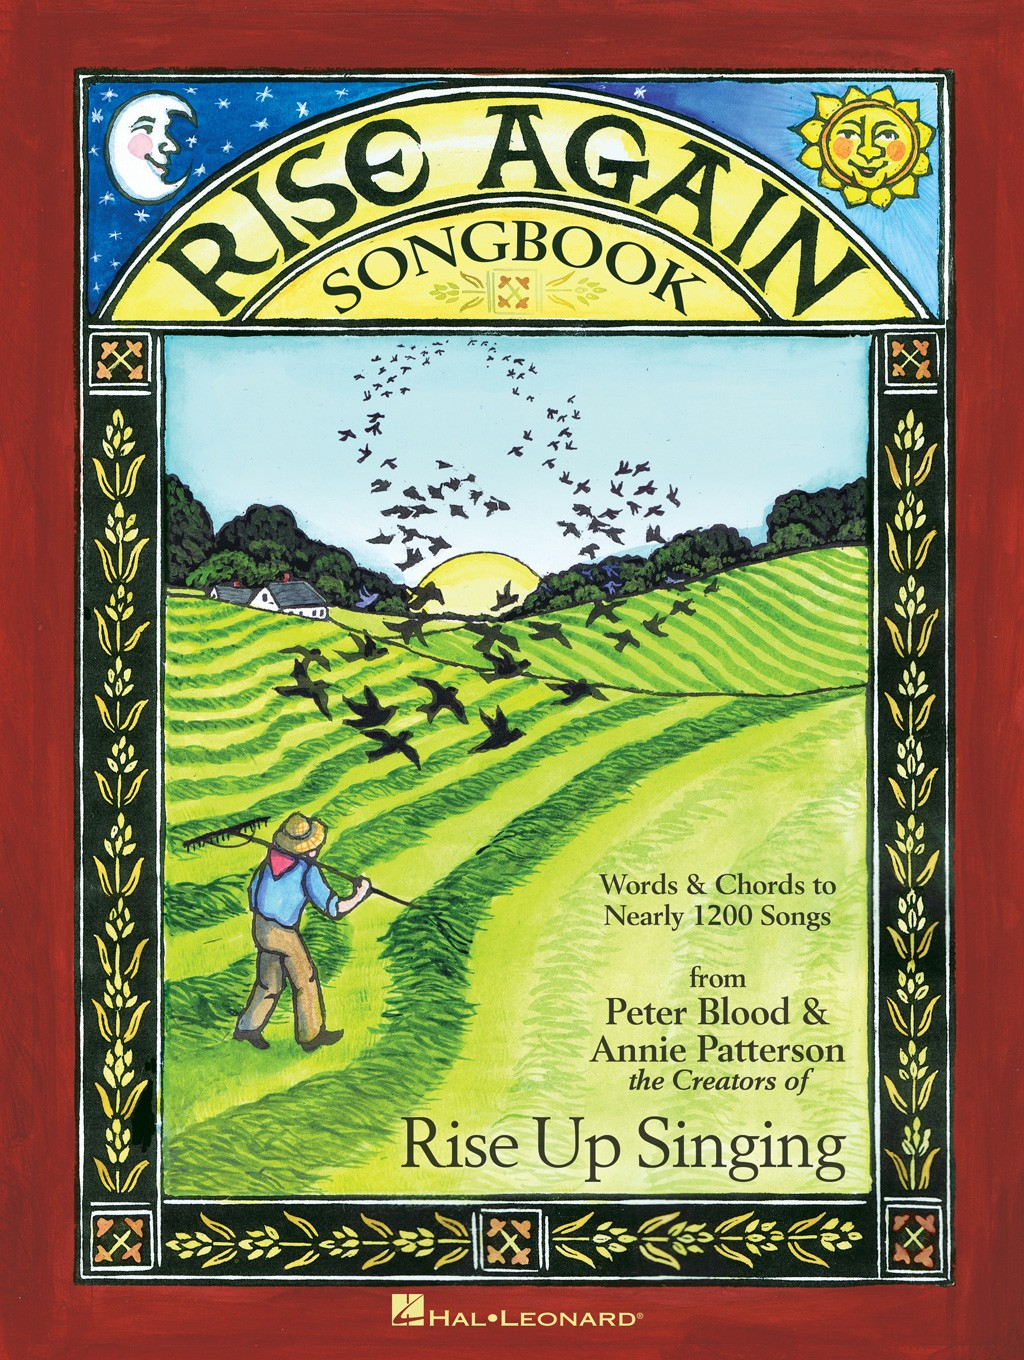 Famed songbook rise up singing gets a sequel rise again music rise again songbook edited by peter blood and annie patterson hal leonard corporation 304 pages 2750 fandeluxe Image collections